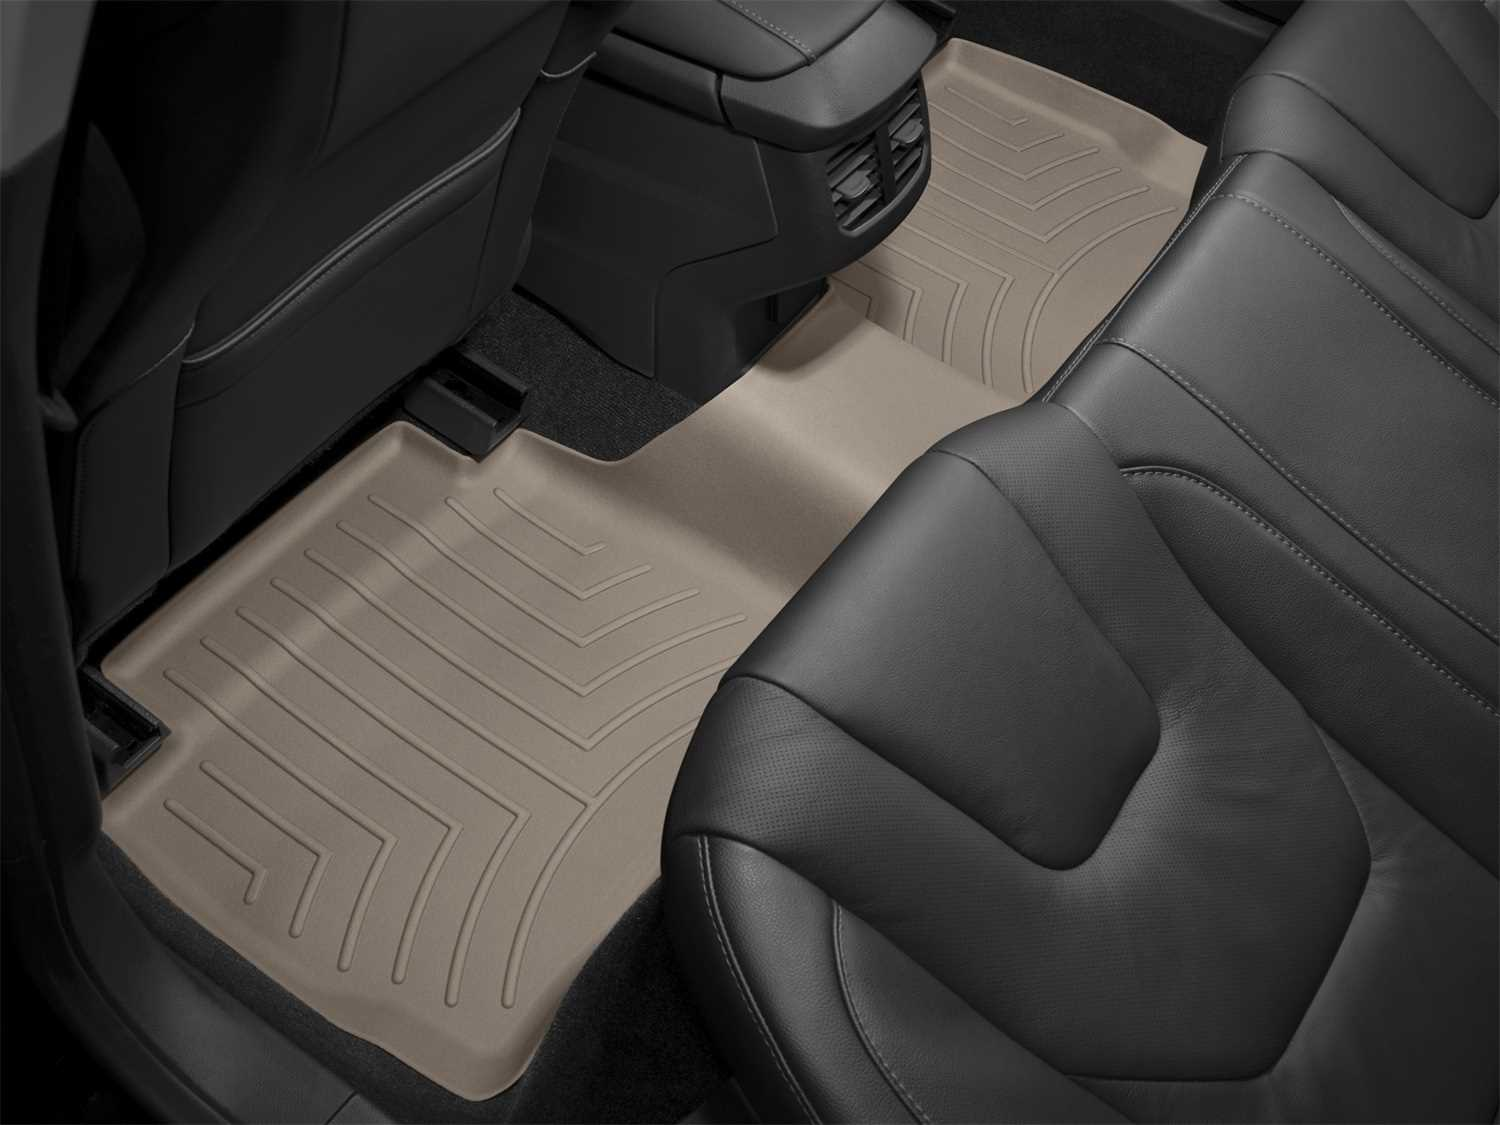 Fantastic 452355 Weathertech Floorliner Digitalfit 452355 Gmtry Best Dining Table And Chair Ideas Images Gmtryco